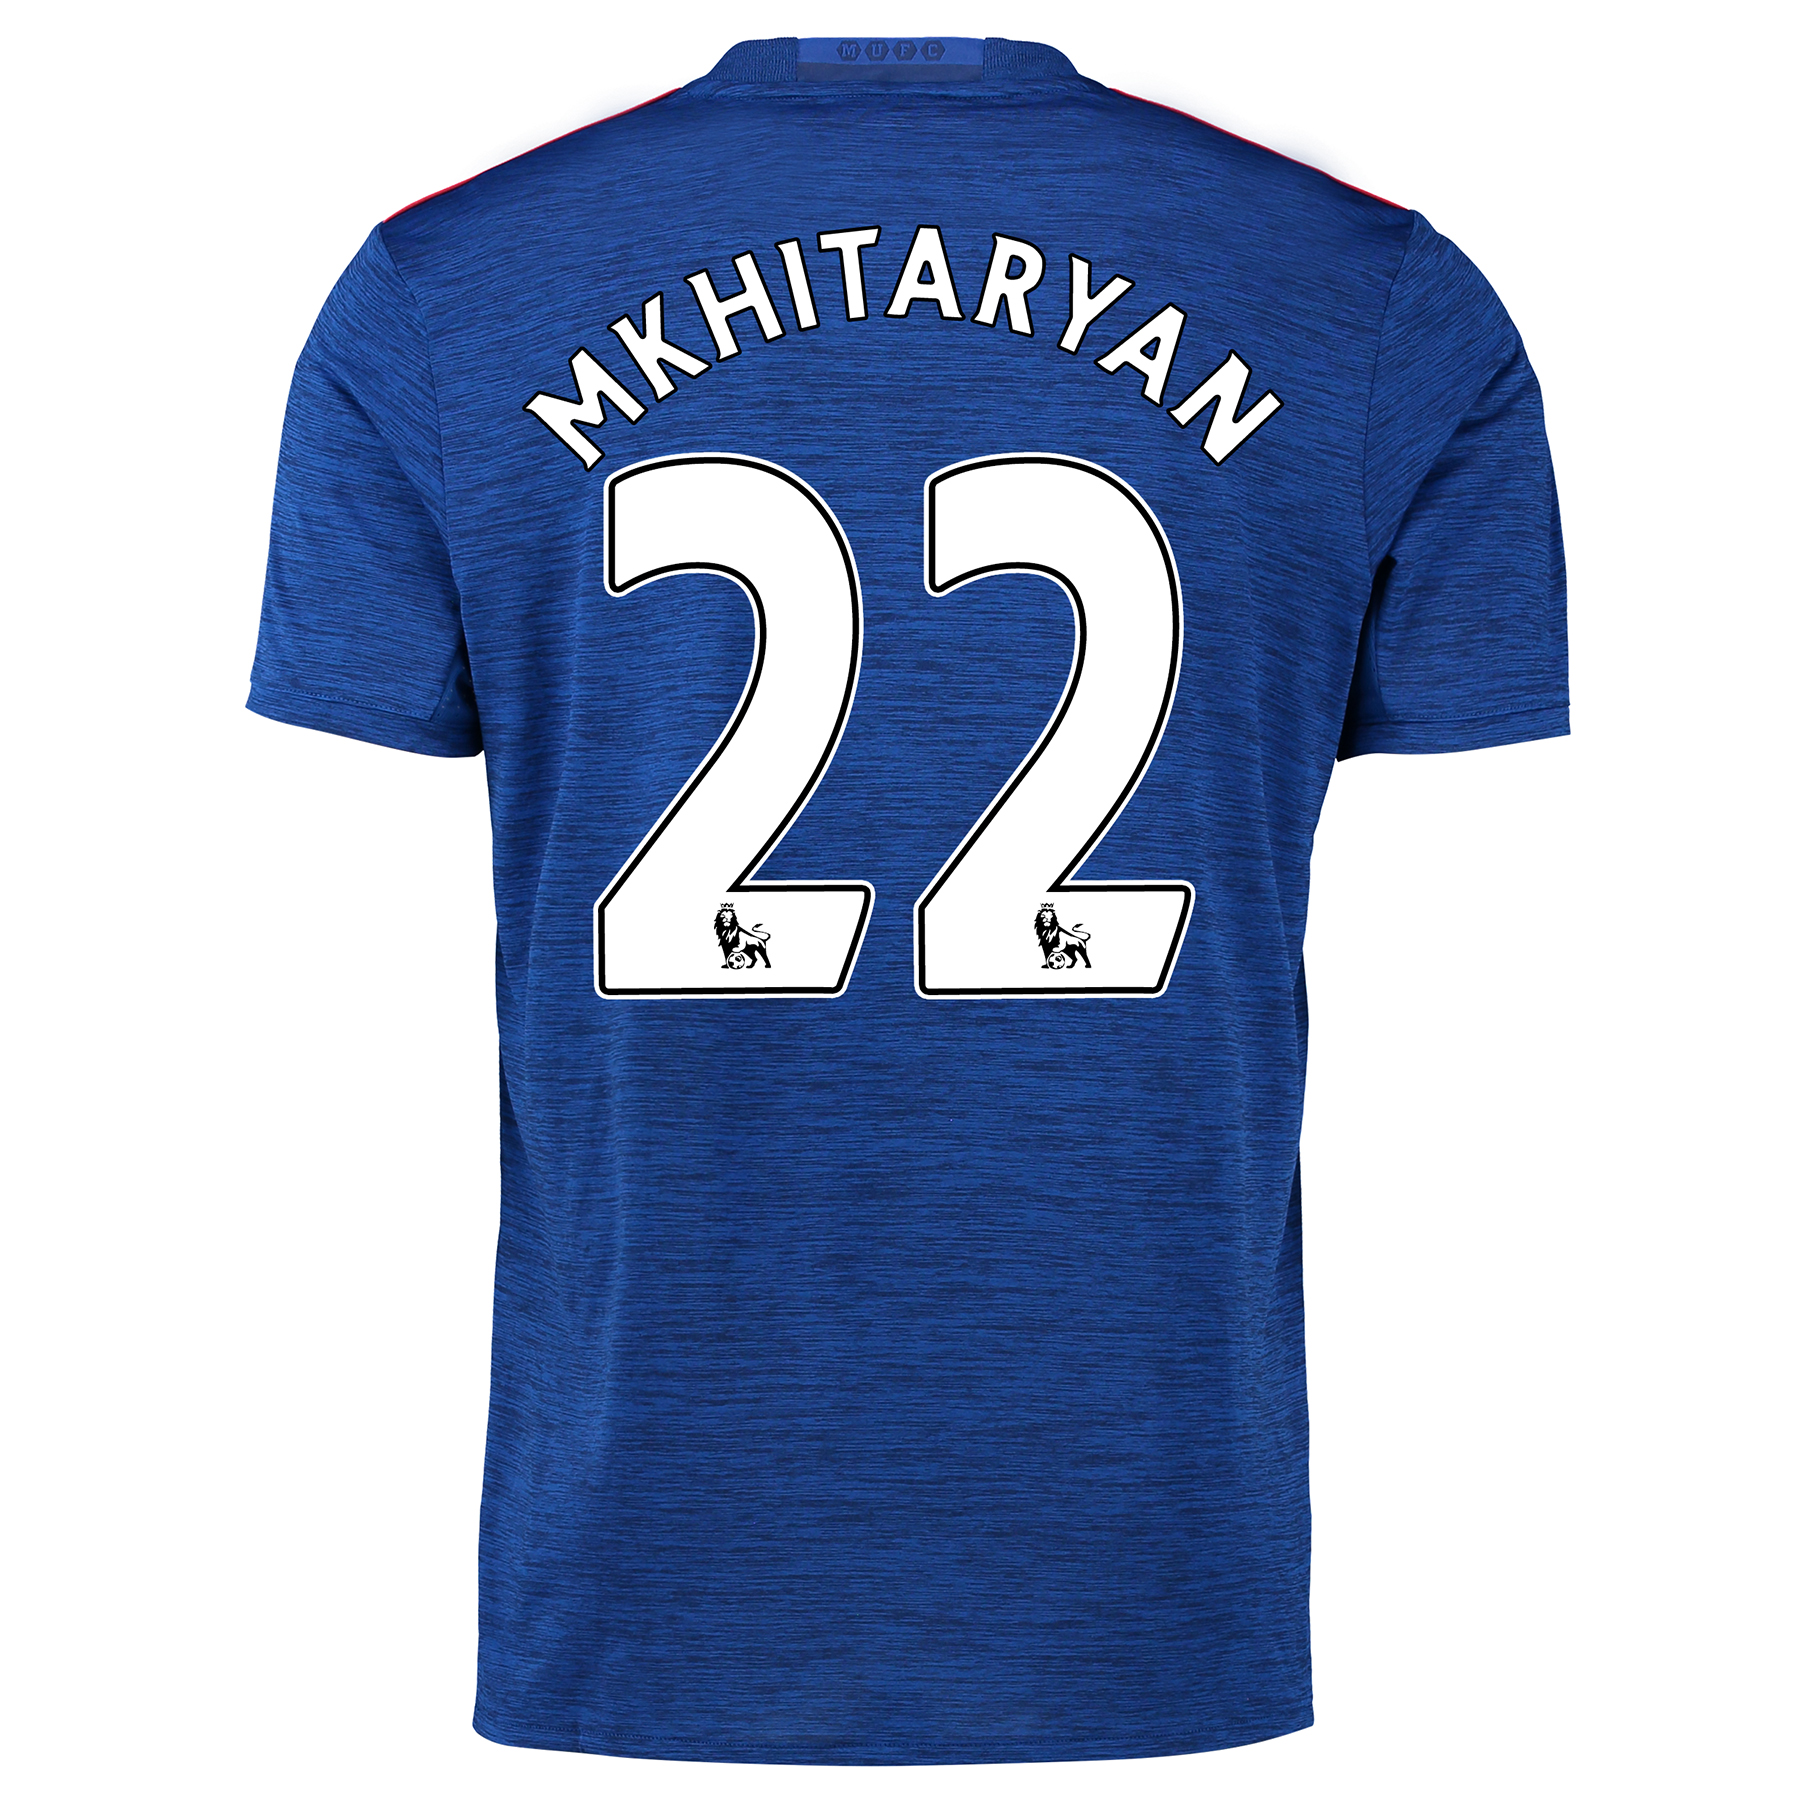 Manchester United Away Shirt 2016-17 with Mkhitaryan 22 printing